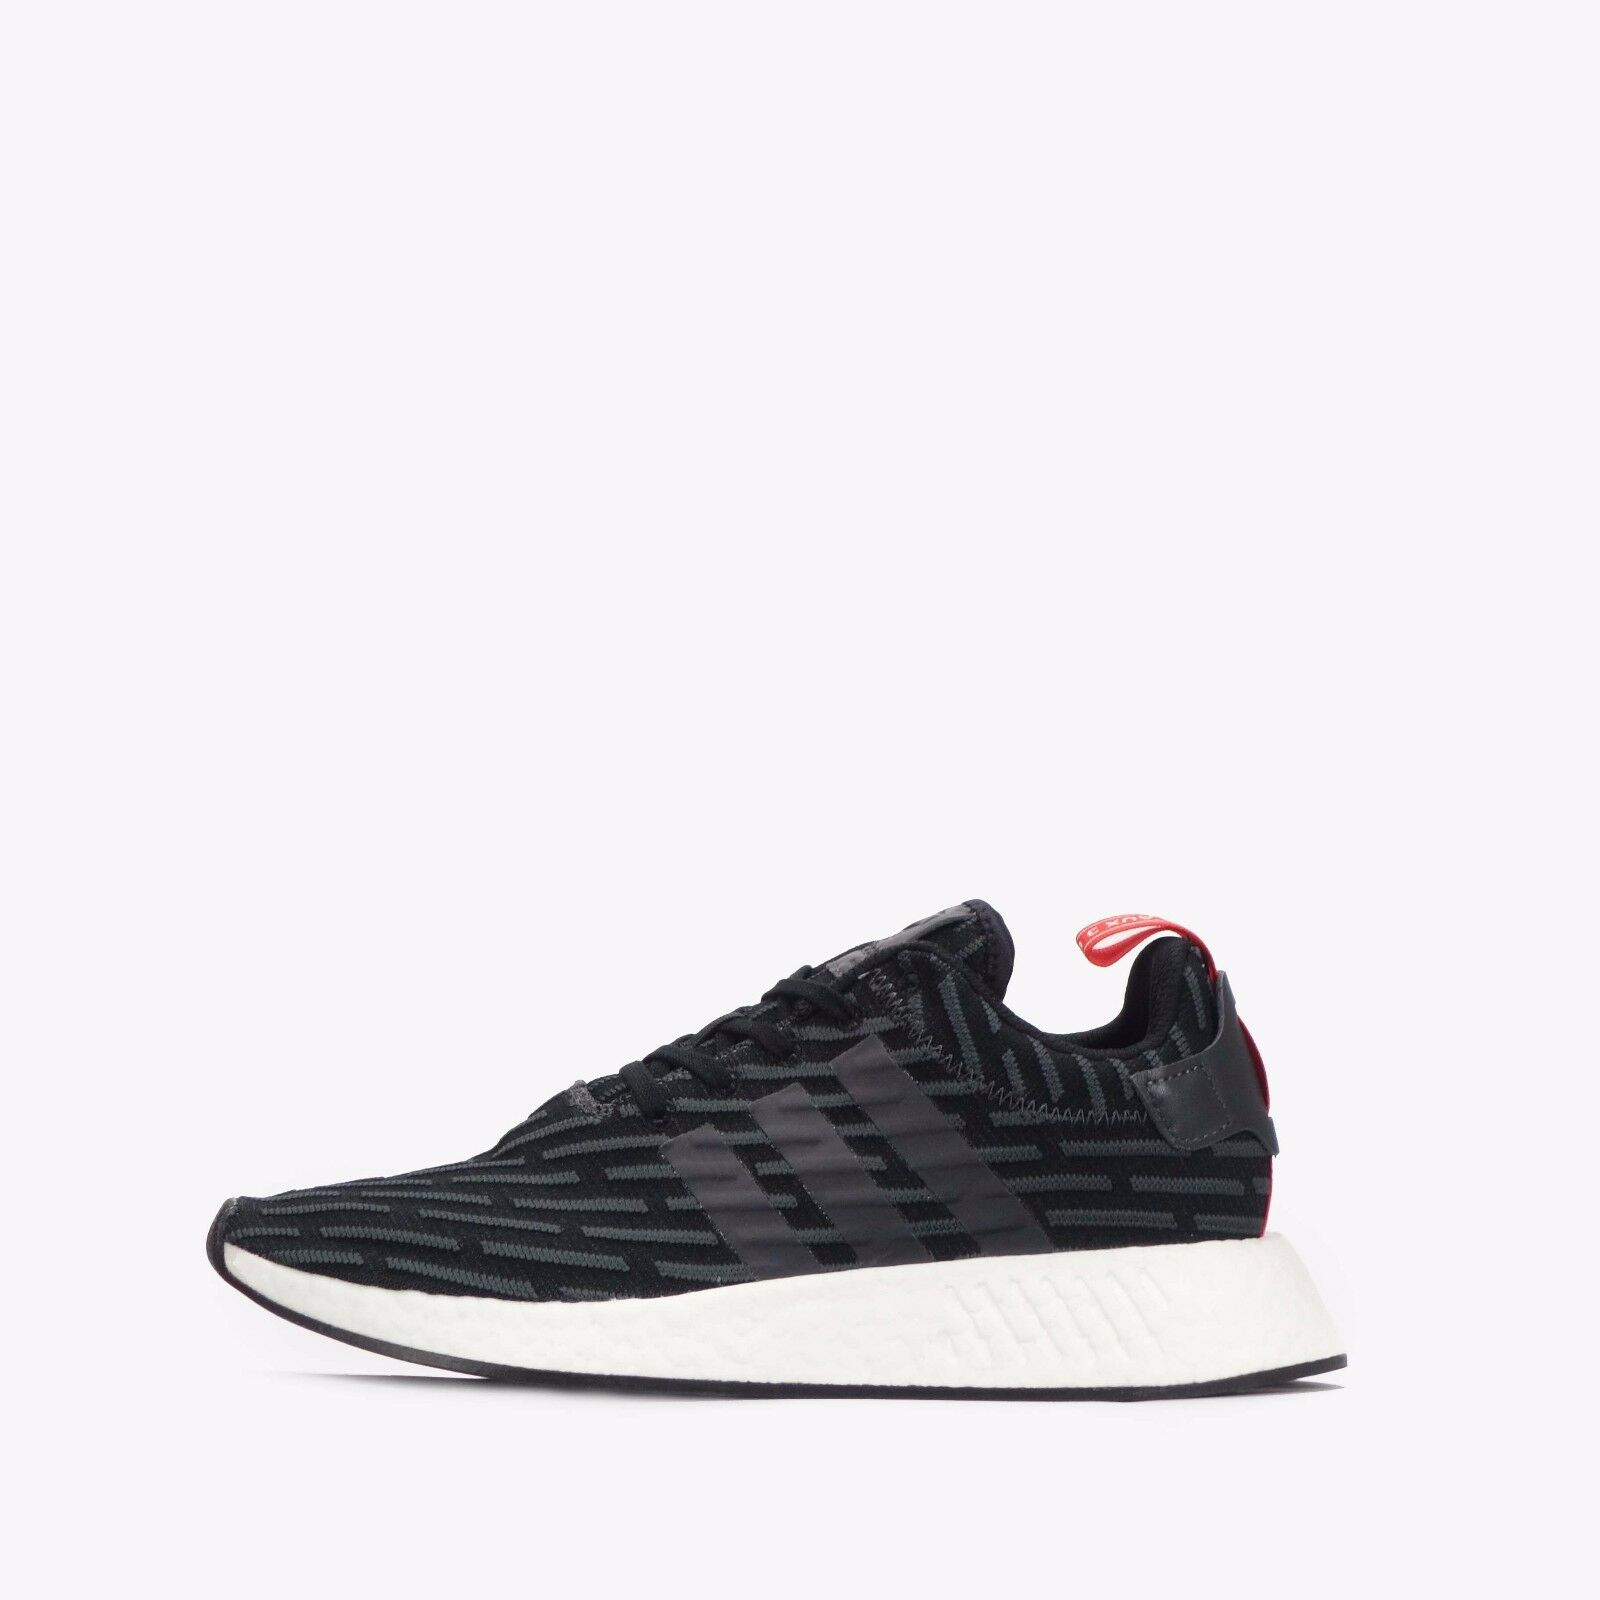 Adidas NMD_R2 Chaussures Hommes Solide Gris-Blanc RRP £ 99.99